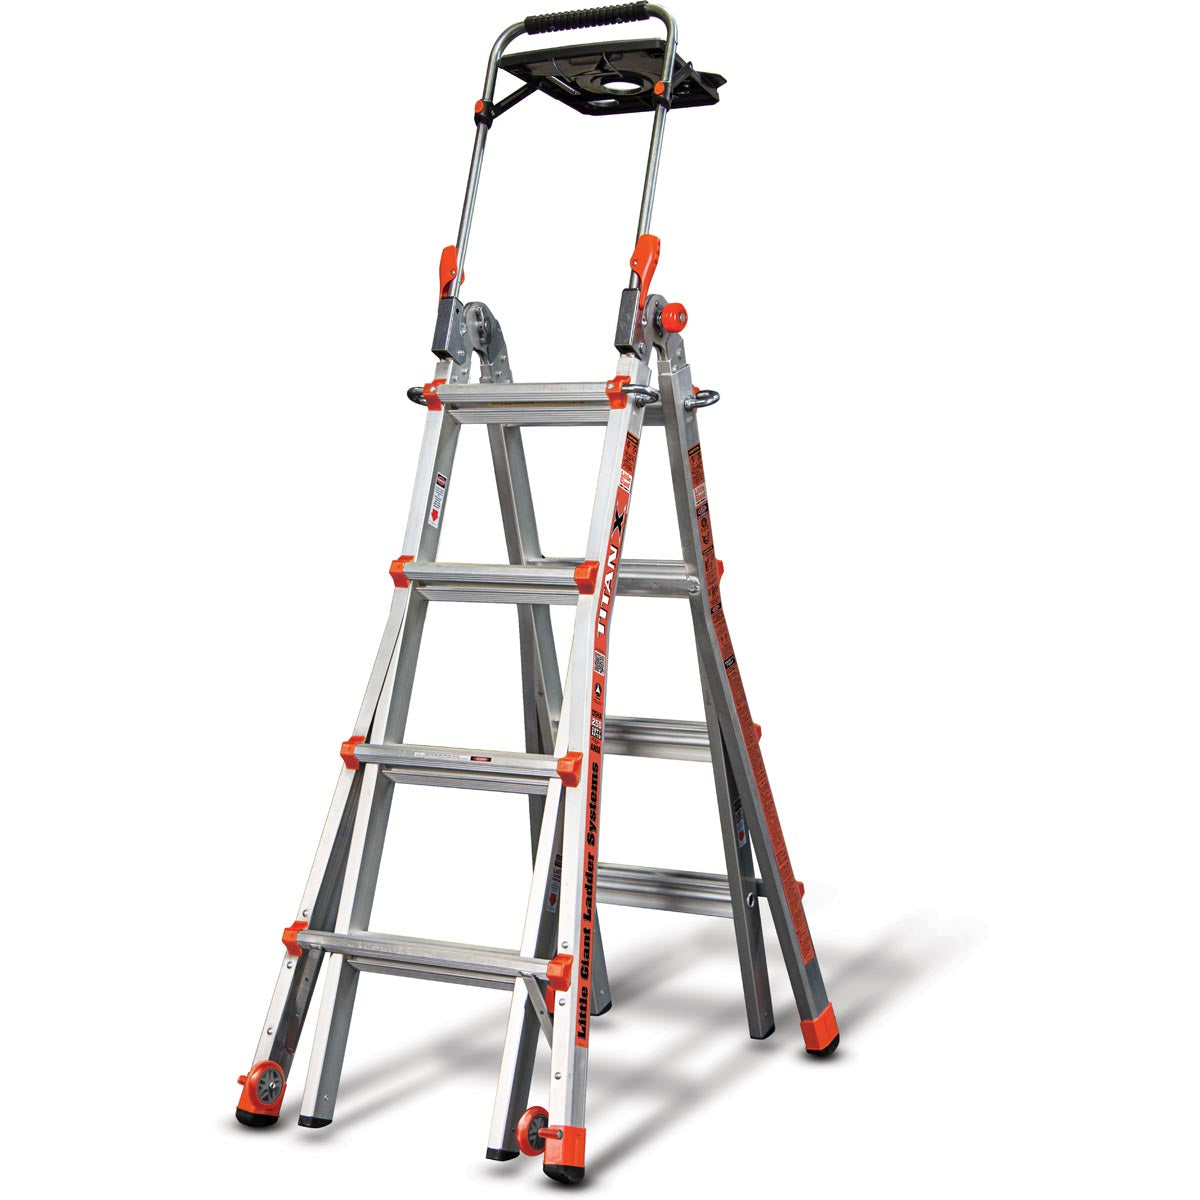 TitanX Ladder with AirDeck - Type 1 (Demo)